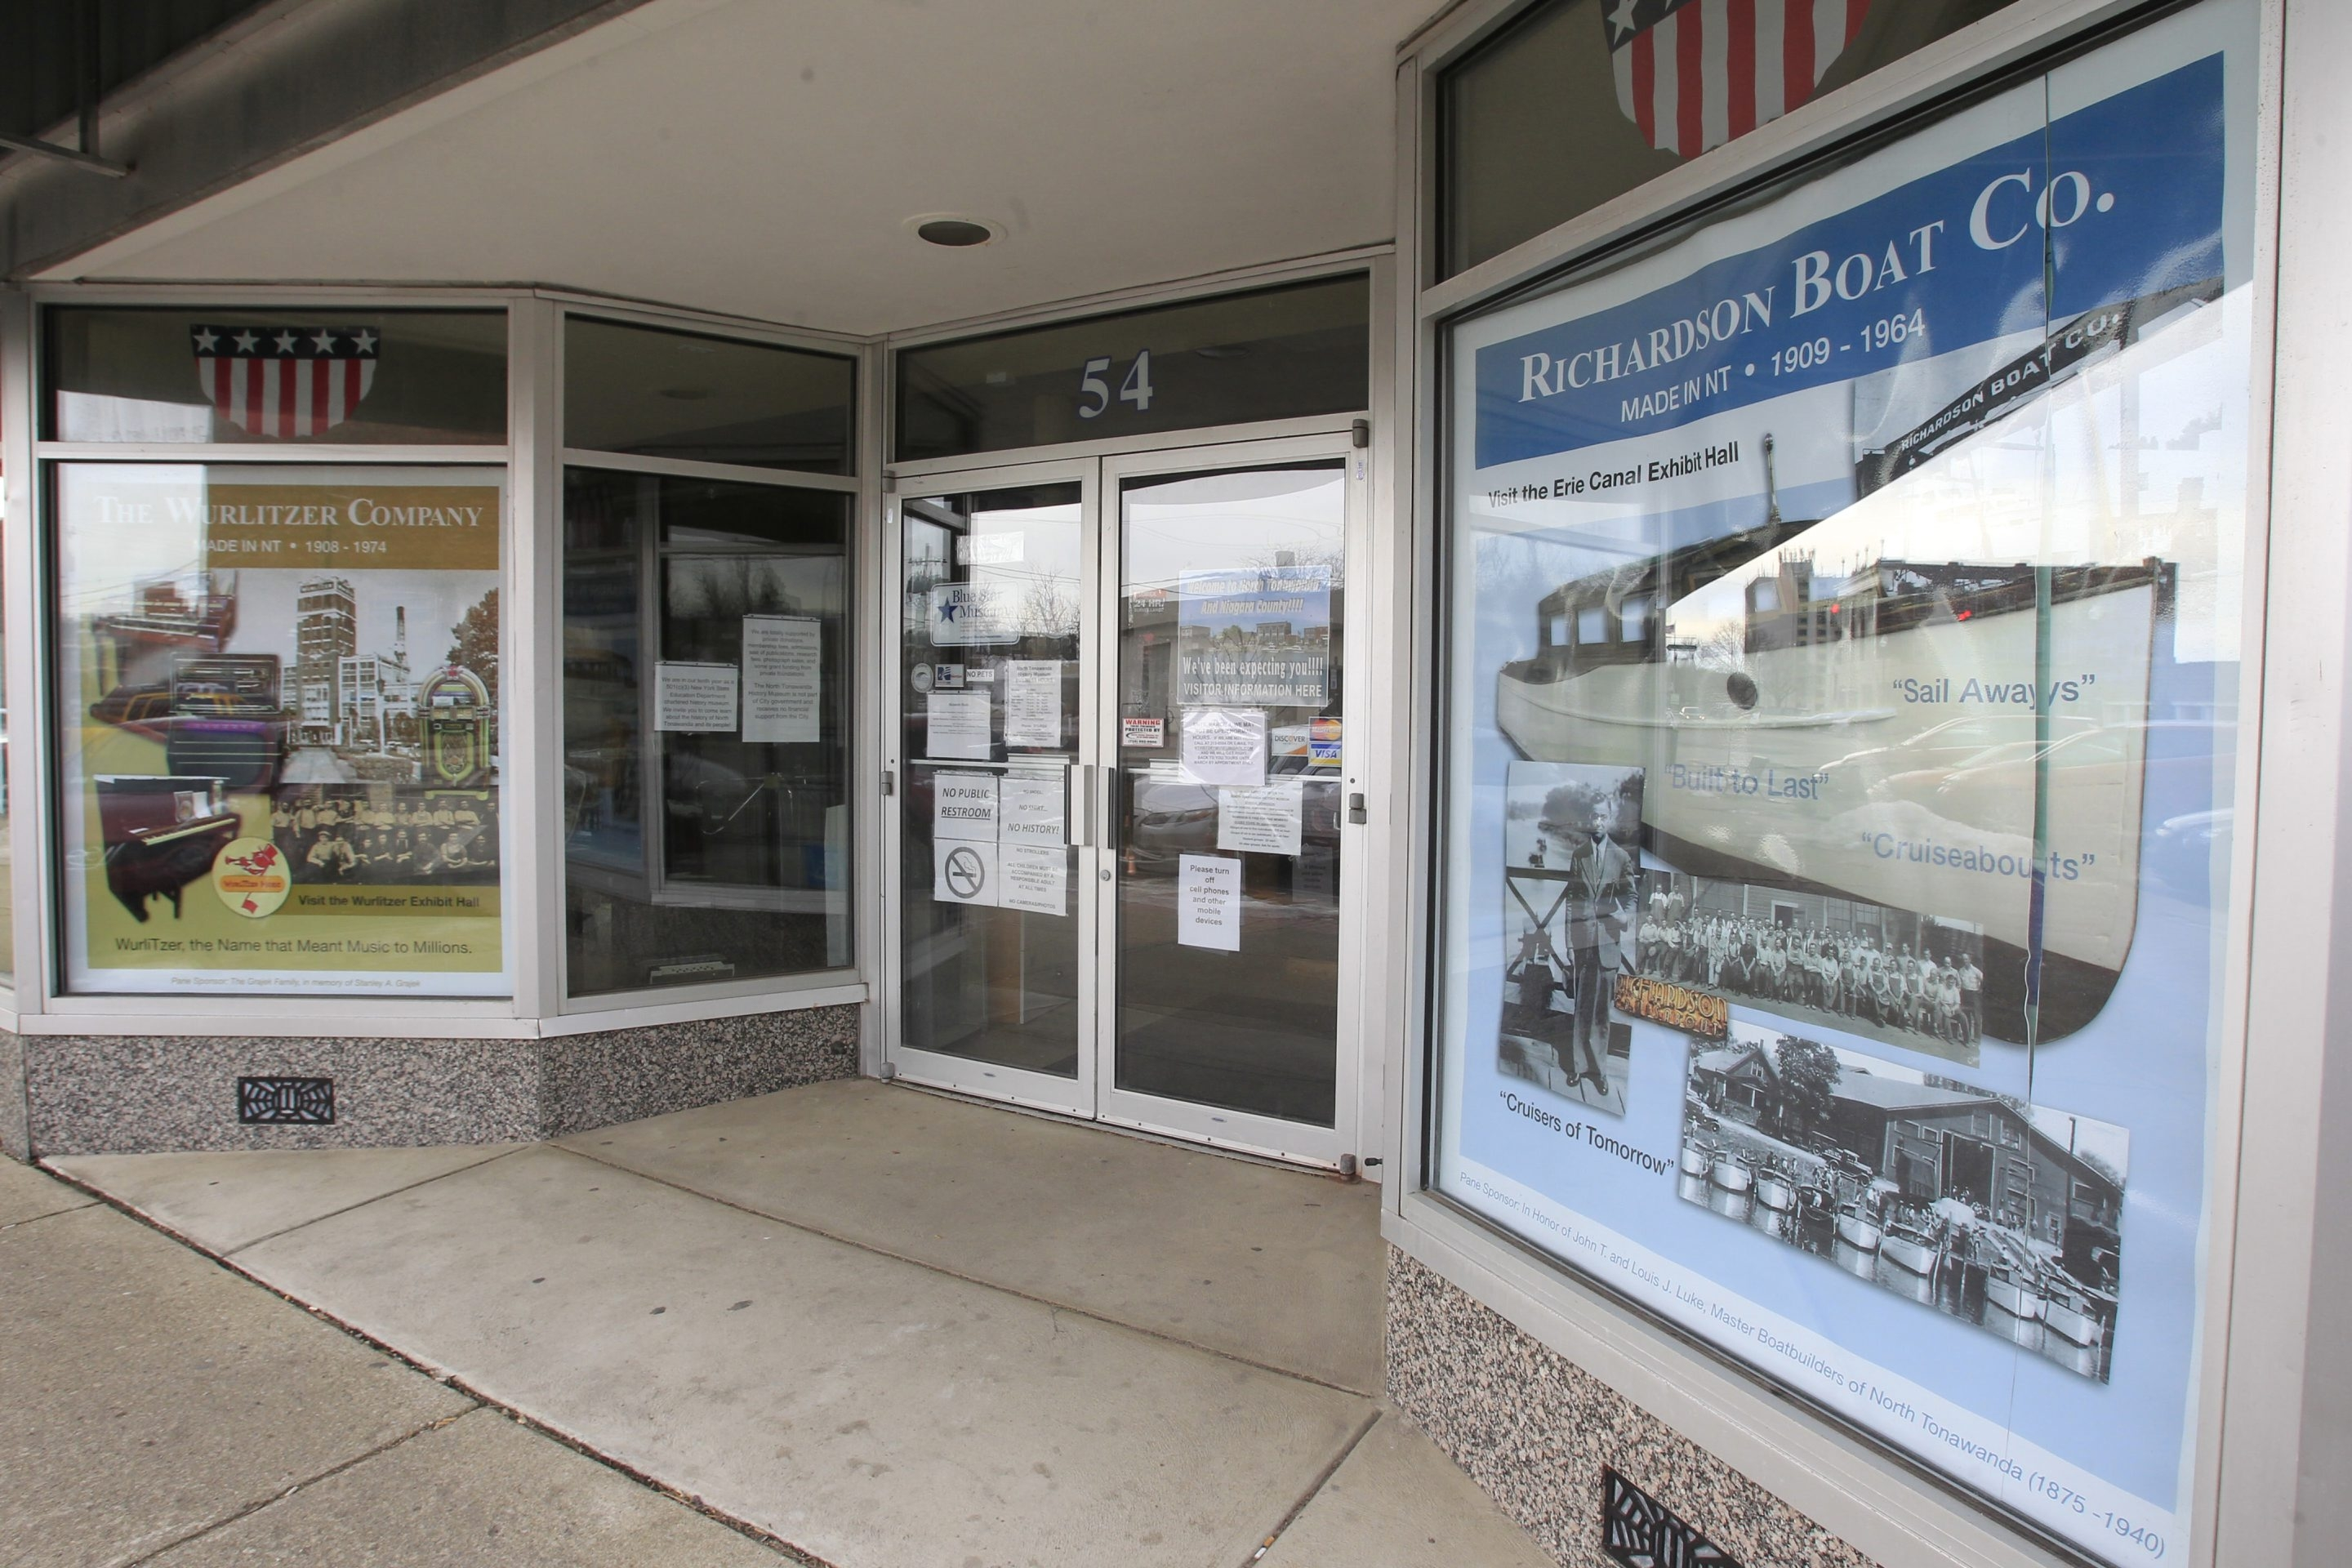 The North Tonawanda History Museum, located in the former G.C. Murphy department store on Webster Street, has 16 sponsors paying $400 each to redo one of the 25 window panes to protect items on exhibit and to inform passers-by.